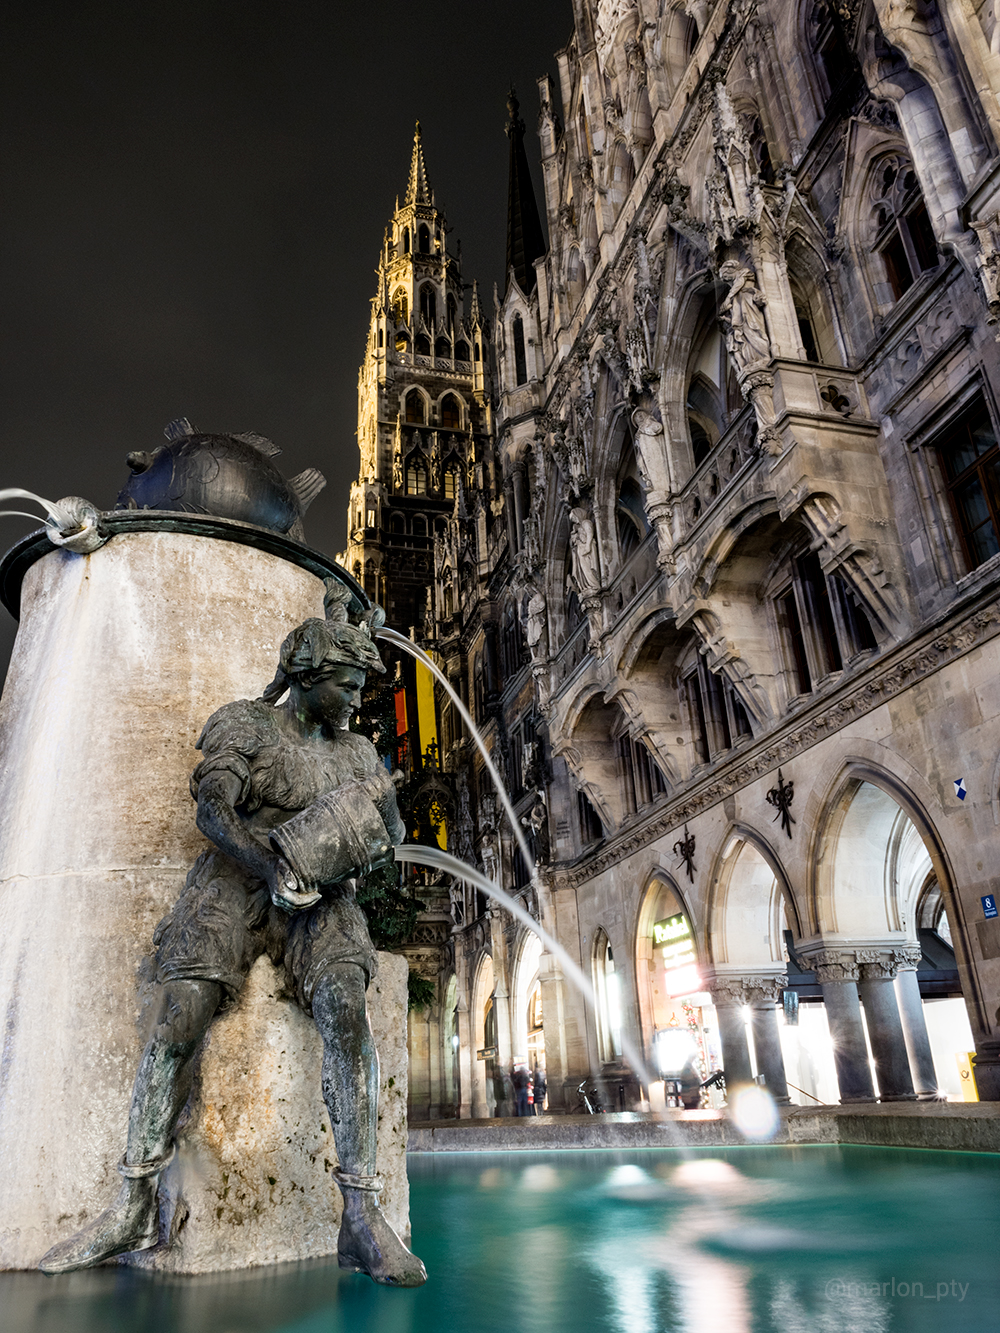 Fountain at the Marienplatz Square in Munich, Germany. Photo: Marlon I. Torres